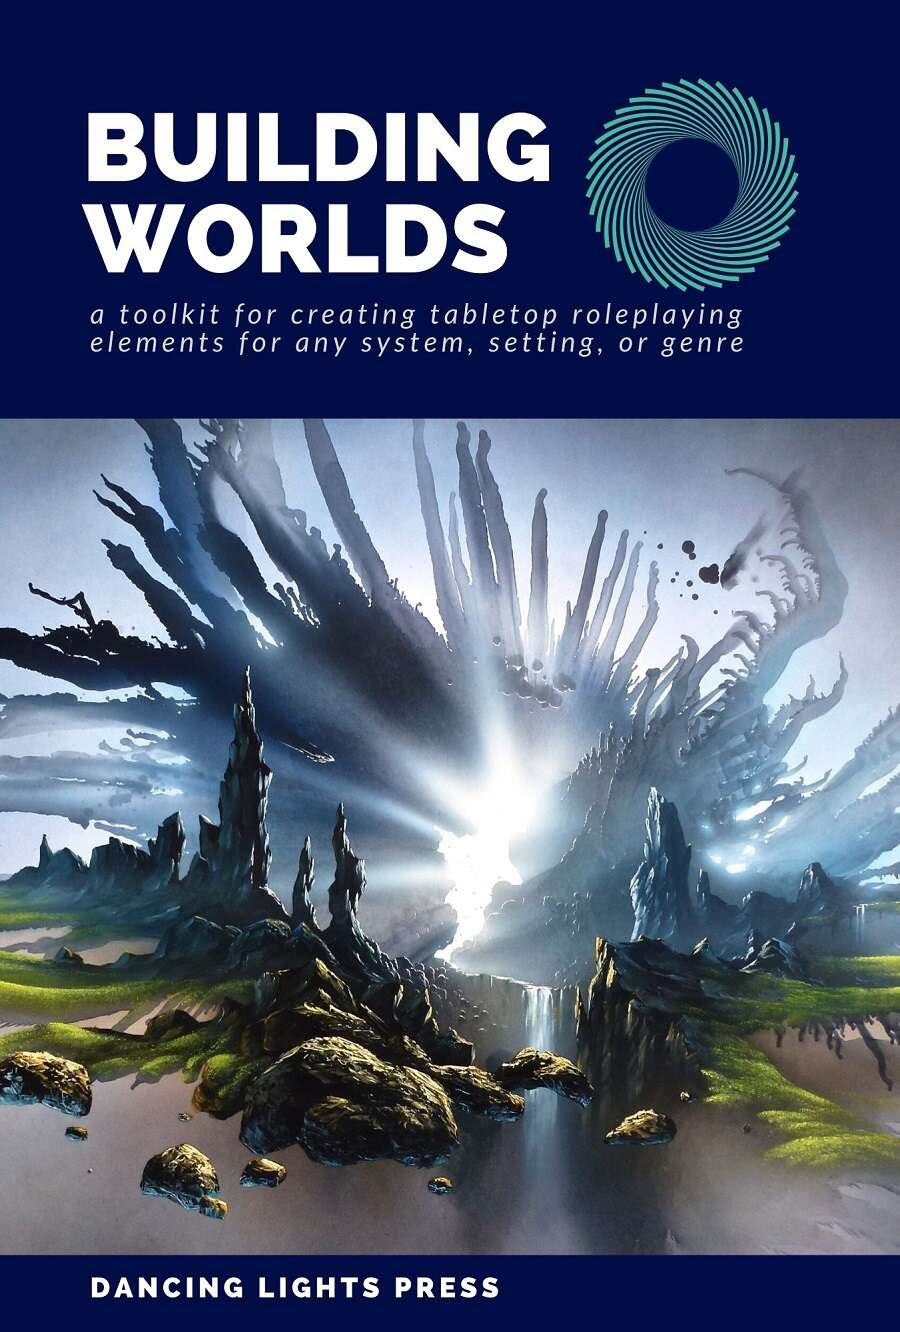 Building Worlds